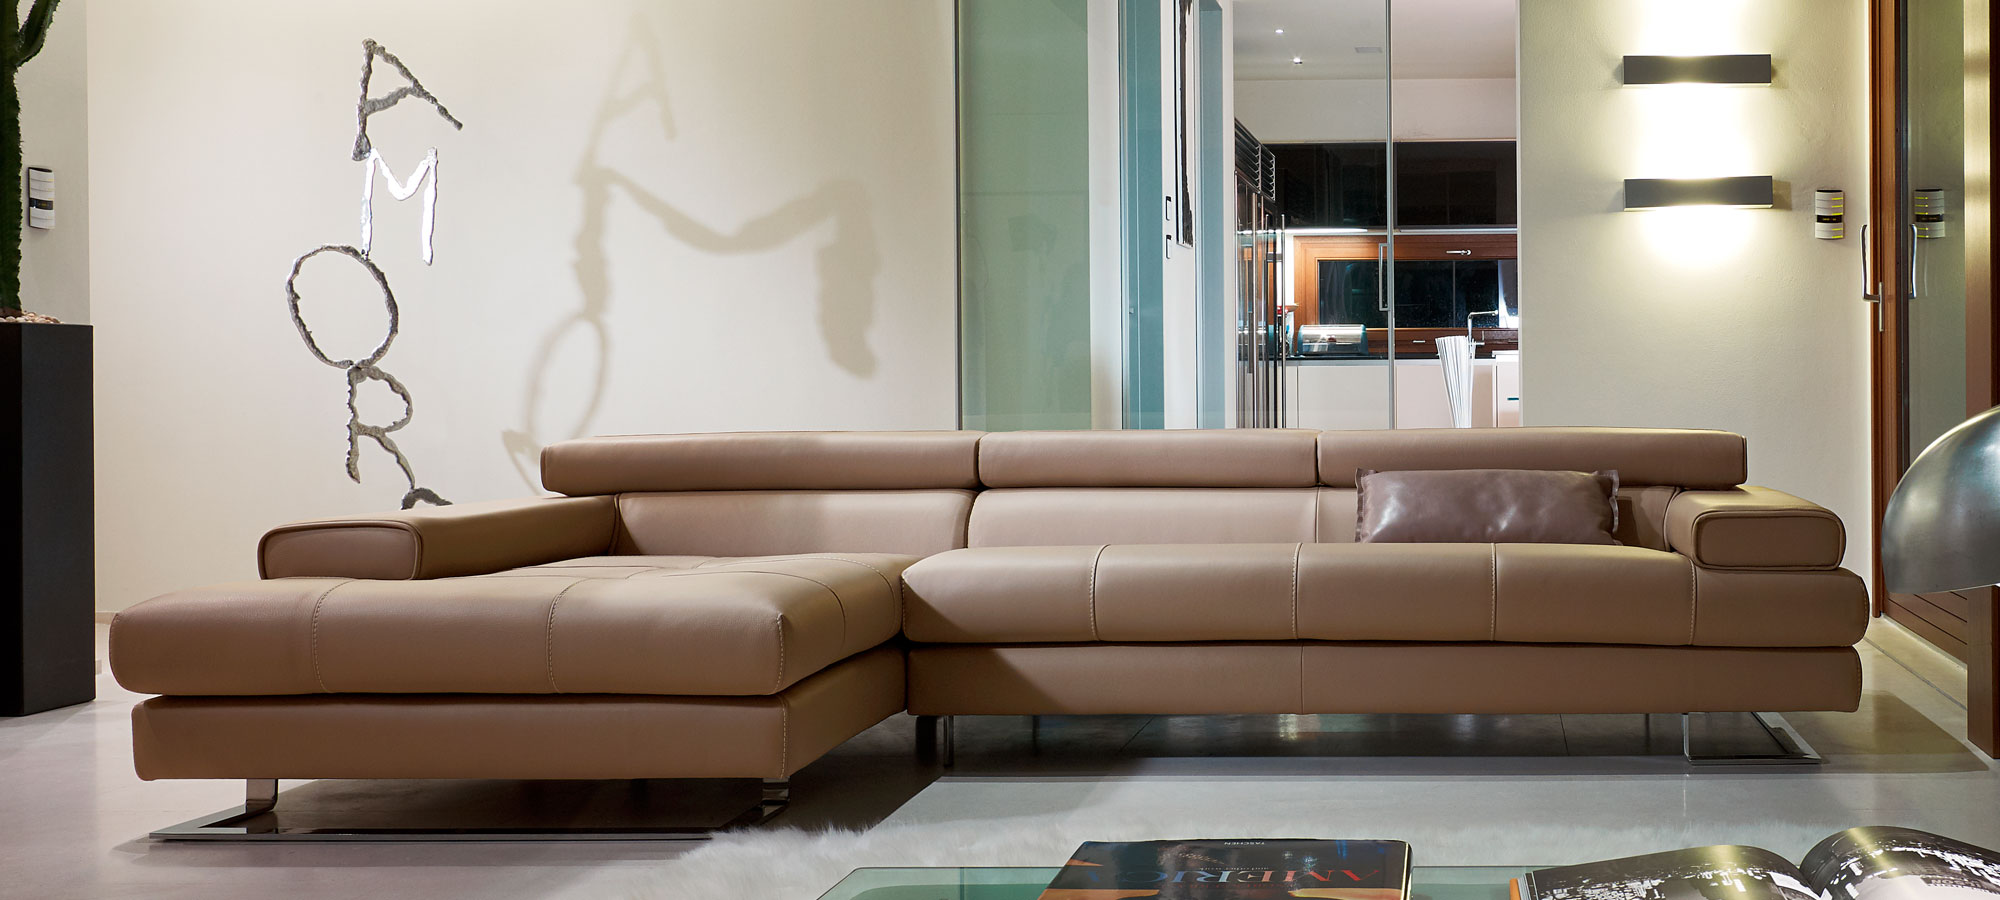 Avenue-gamma-sectional